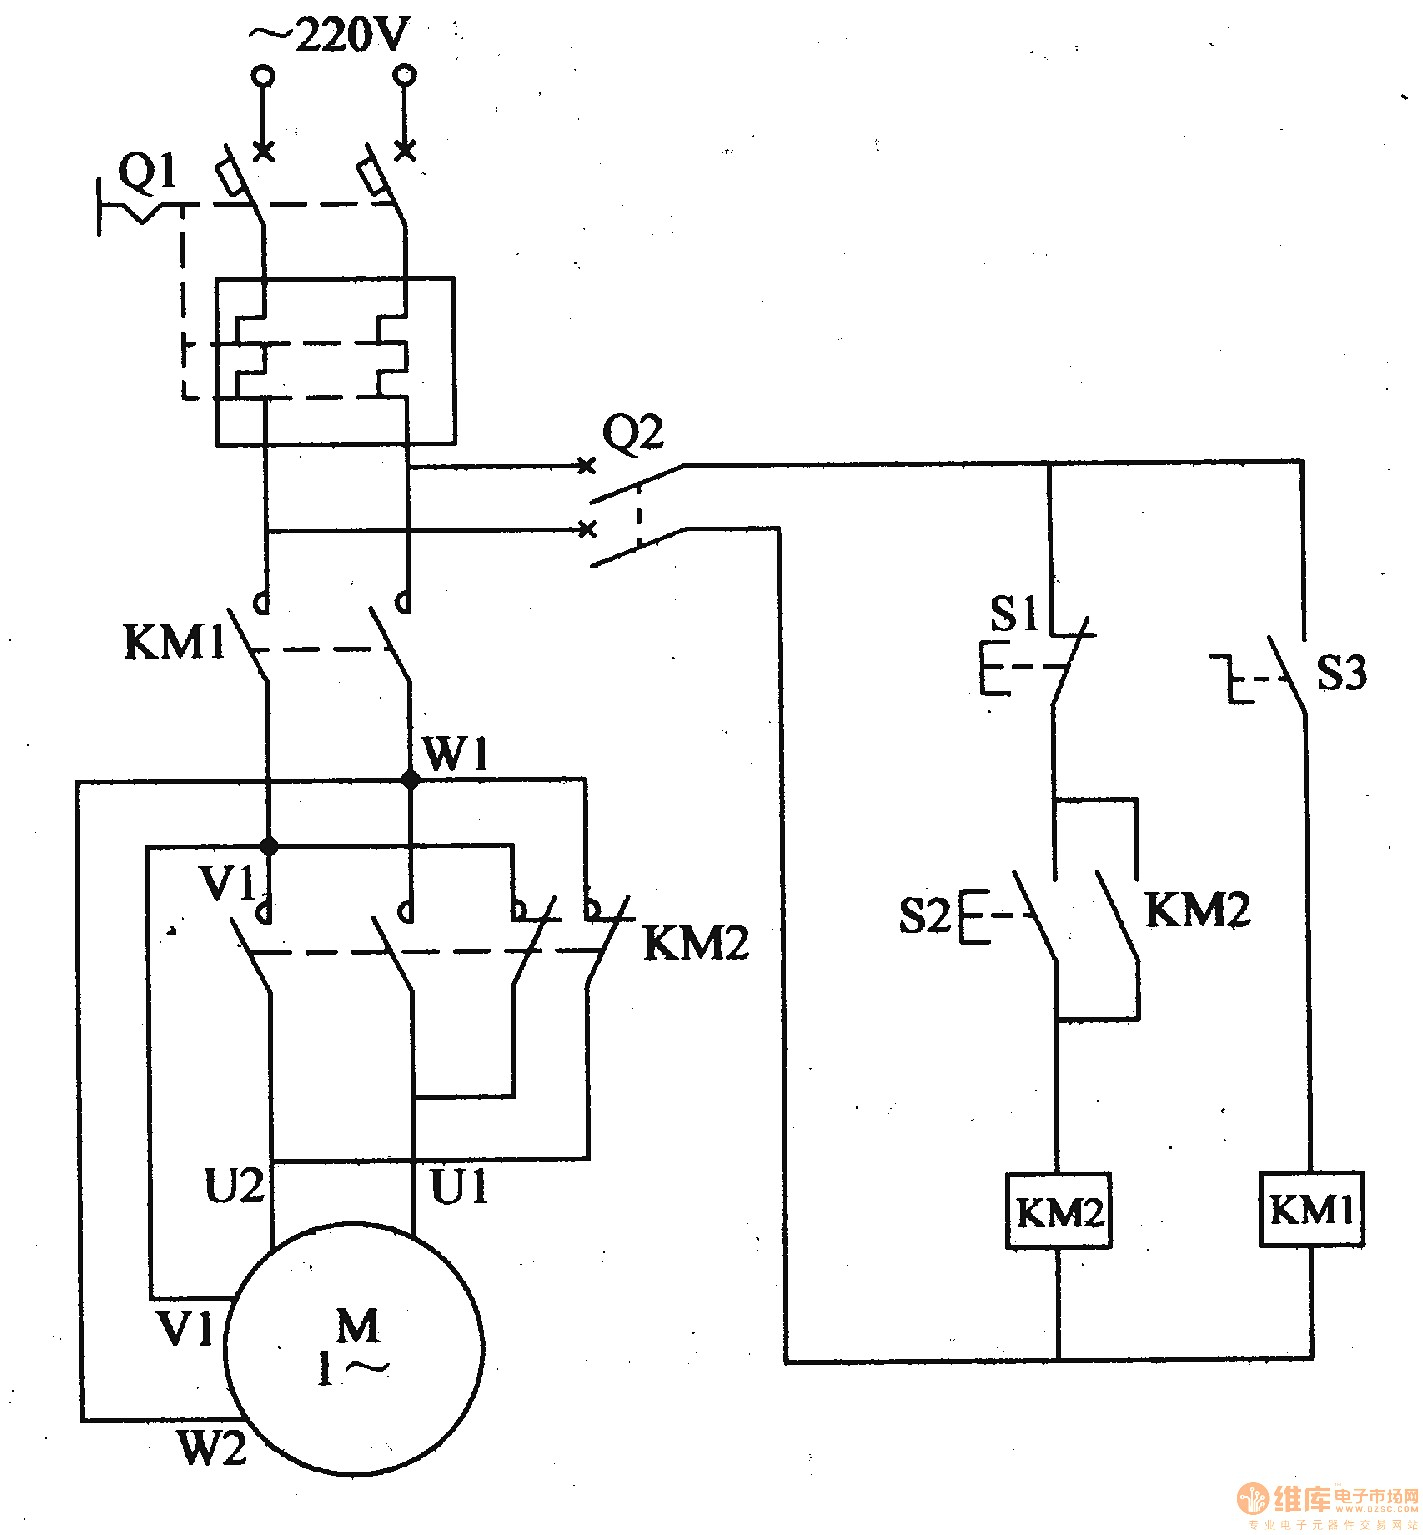 Electric Motor Wiring Diagram Single Phase from wholefoodsonabudget.com